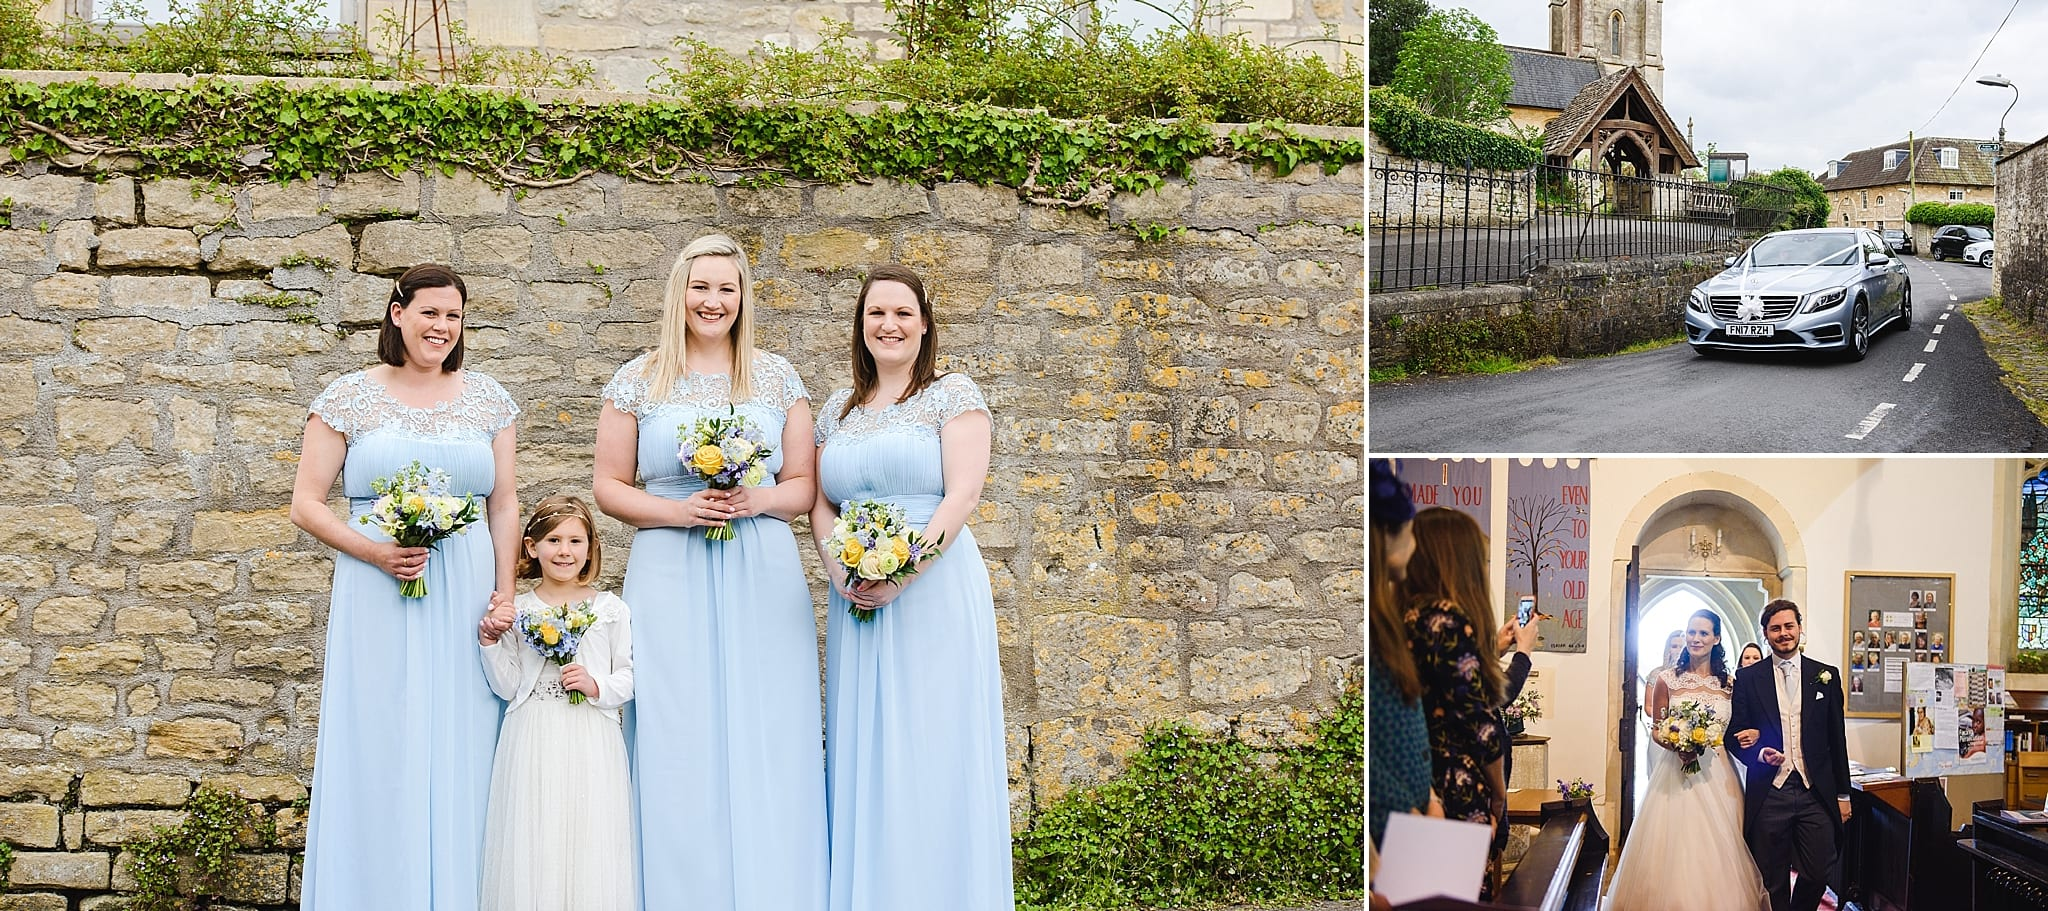 Bridesmaids awaiting the arrival of the bride outside St Swithins church, Bathford